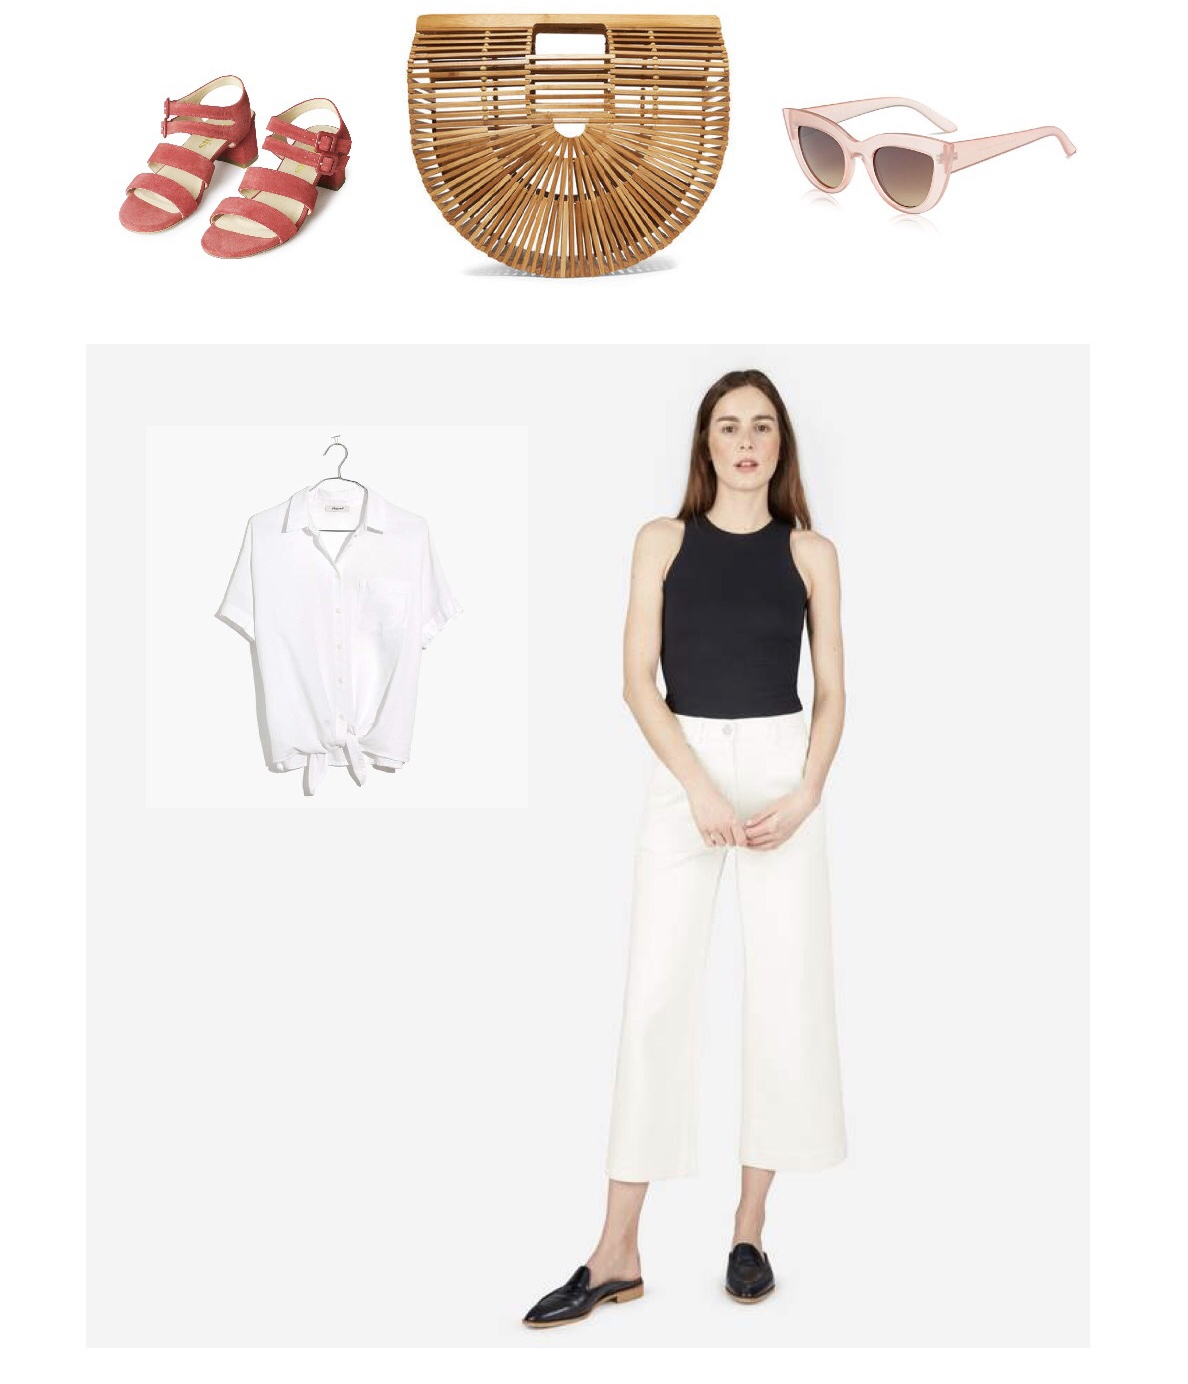 Marais* sandals ($310)  or these  cheap Zara cuties ($80) , Cult Gaia bag (sold out) or  Amazon bamboo handbag ($40) ,  Cat eye sunglasses ($10) ,  Madewell tie-front ($65)  or  Everlane* white button down ($68) ,  Everlane* wide leg crop ($68)